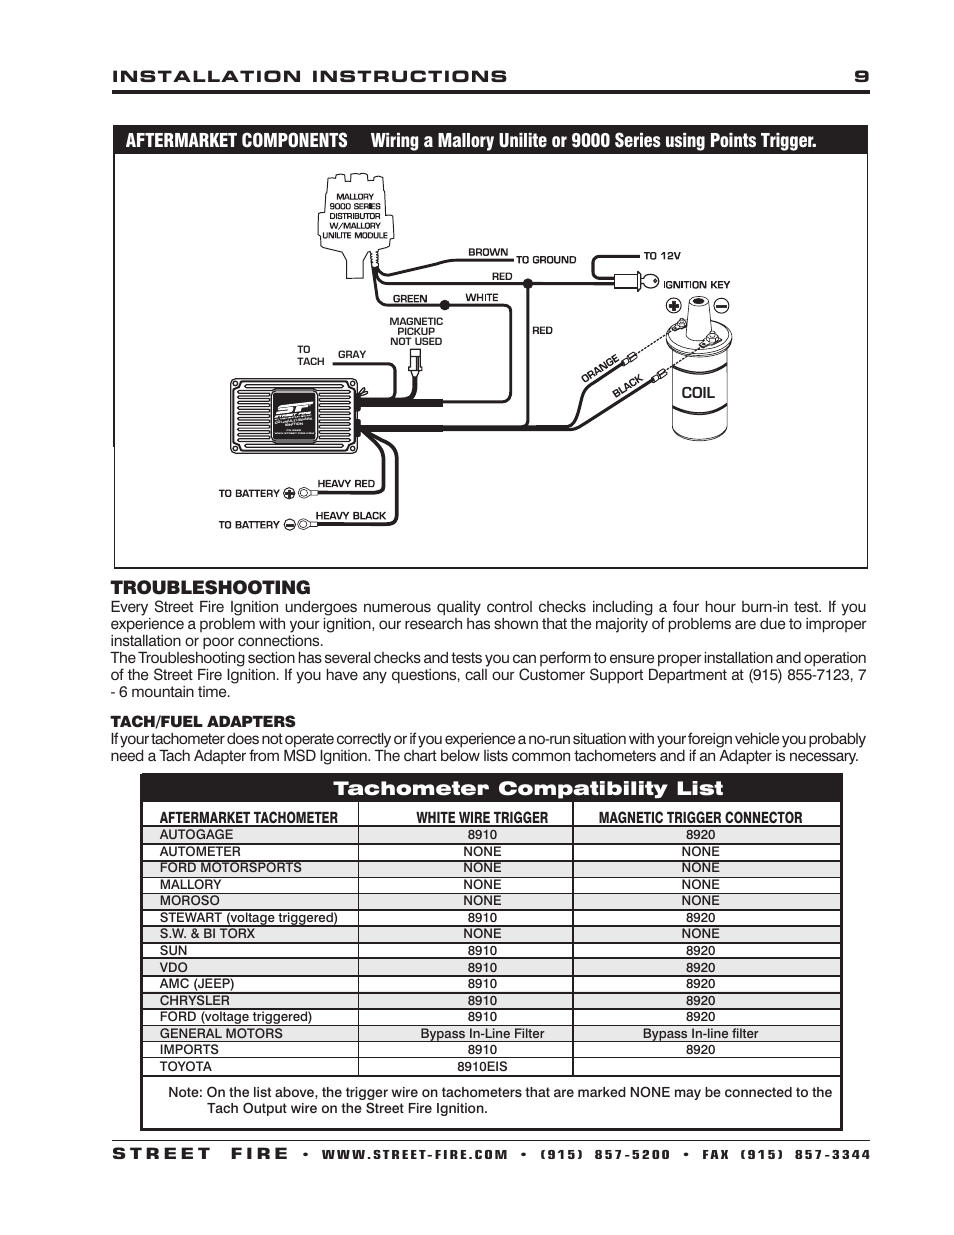 msd 5520 street fire ignition control installation page9?resize=665%2C861 mallory high fire ignition wiring diagrams mallory dist wiring mallory unilite wiring diagram at soozxer.org